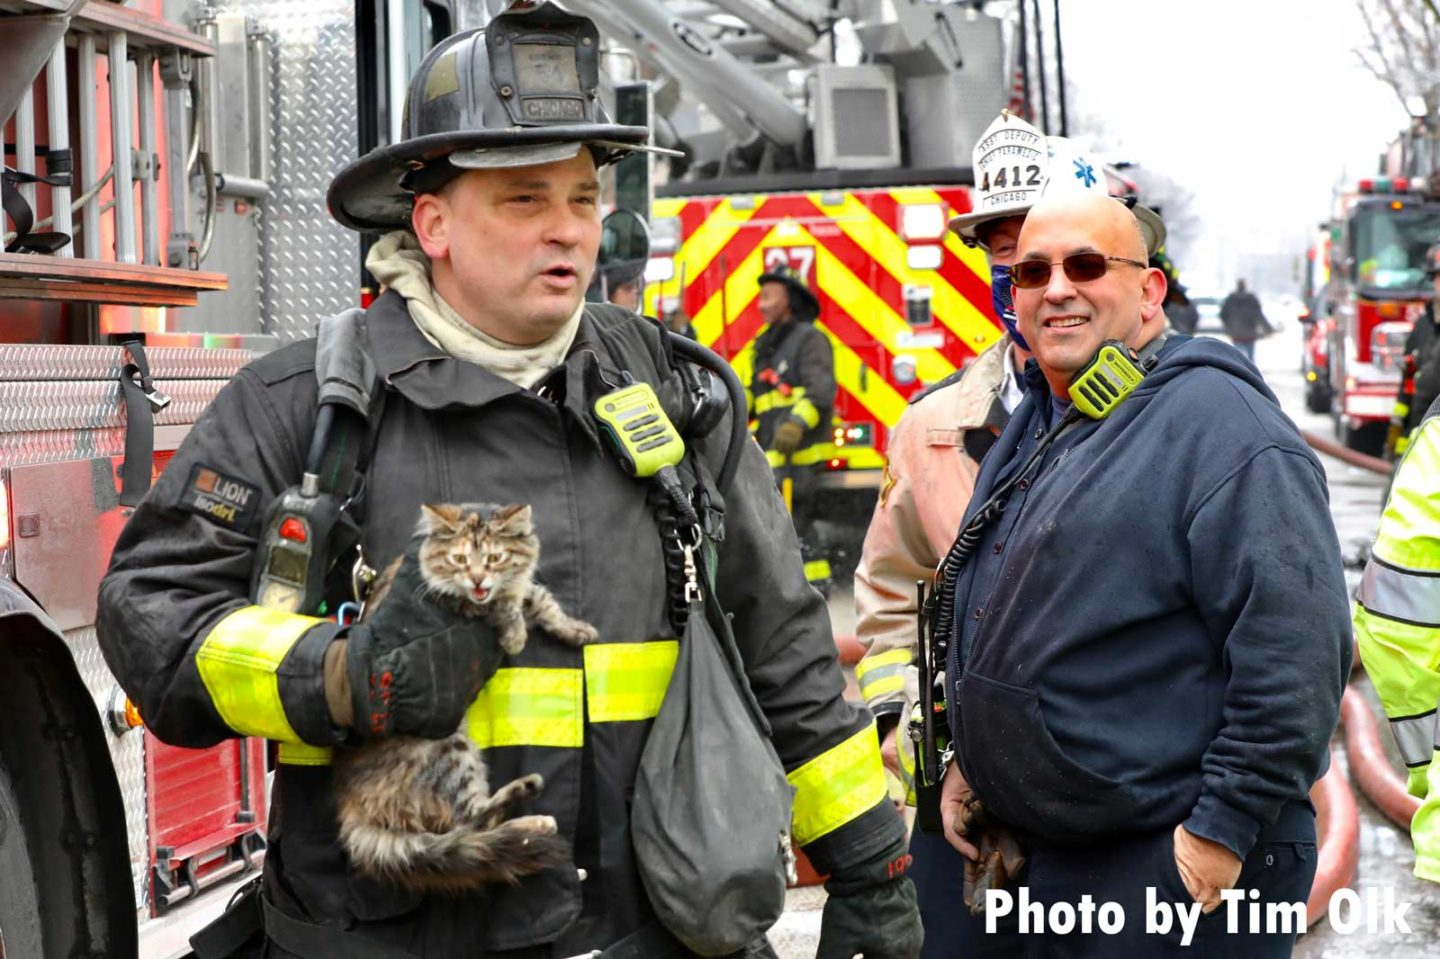 Chicago firefighters with a rescued kitten at a house fire